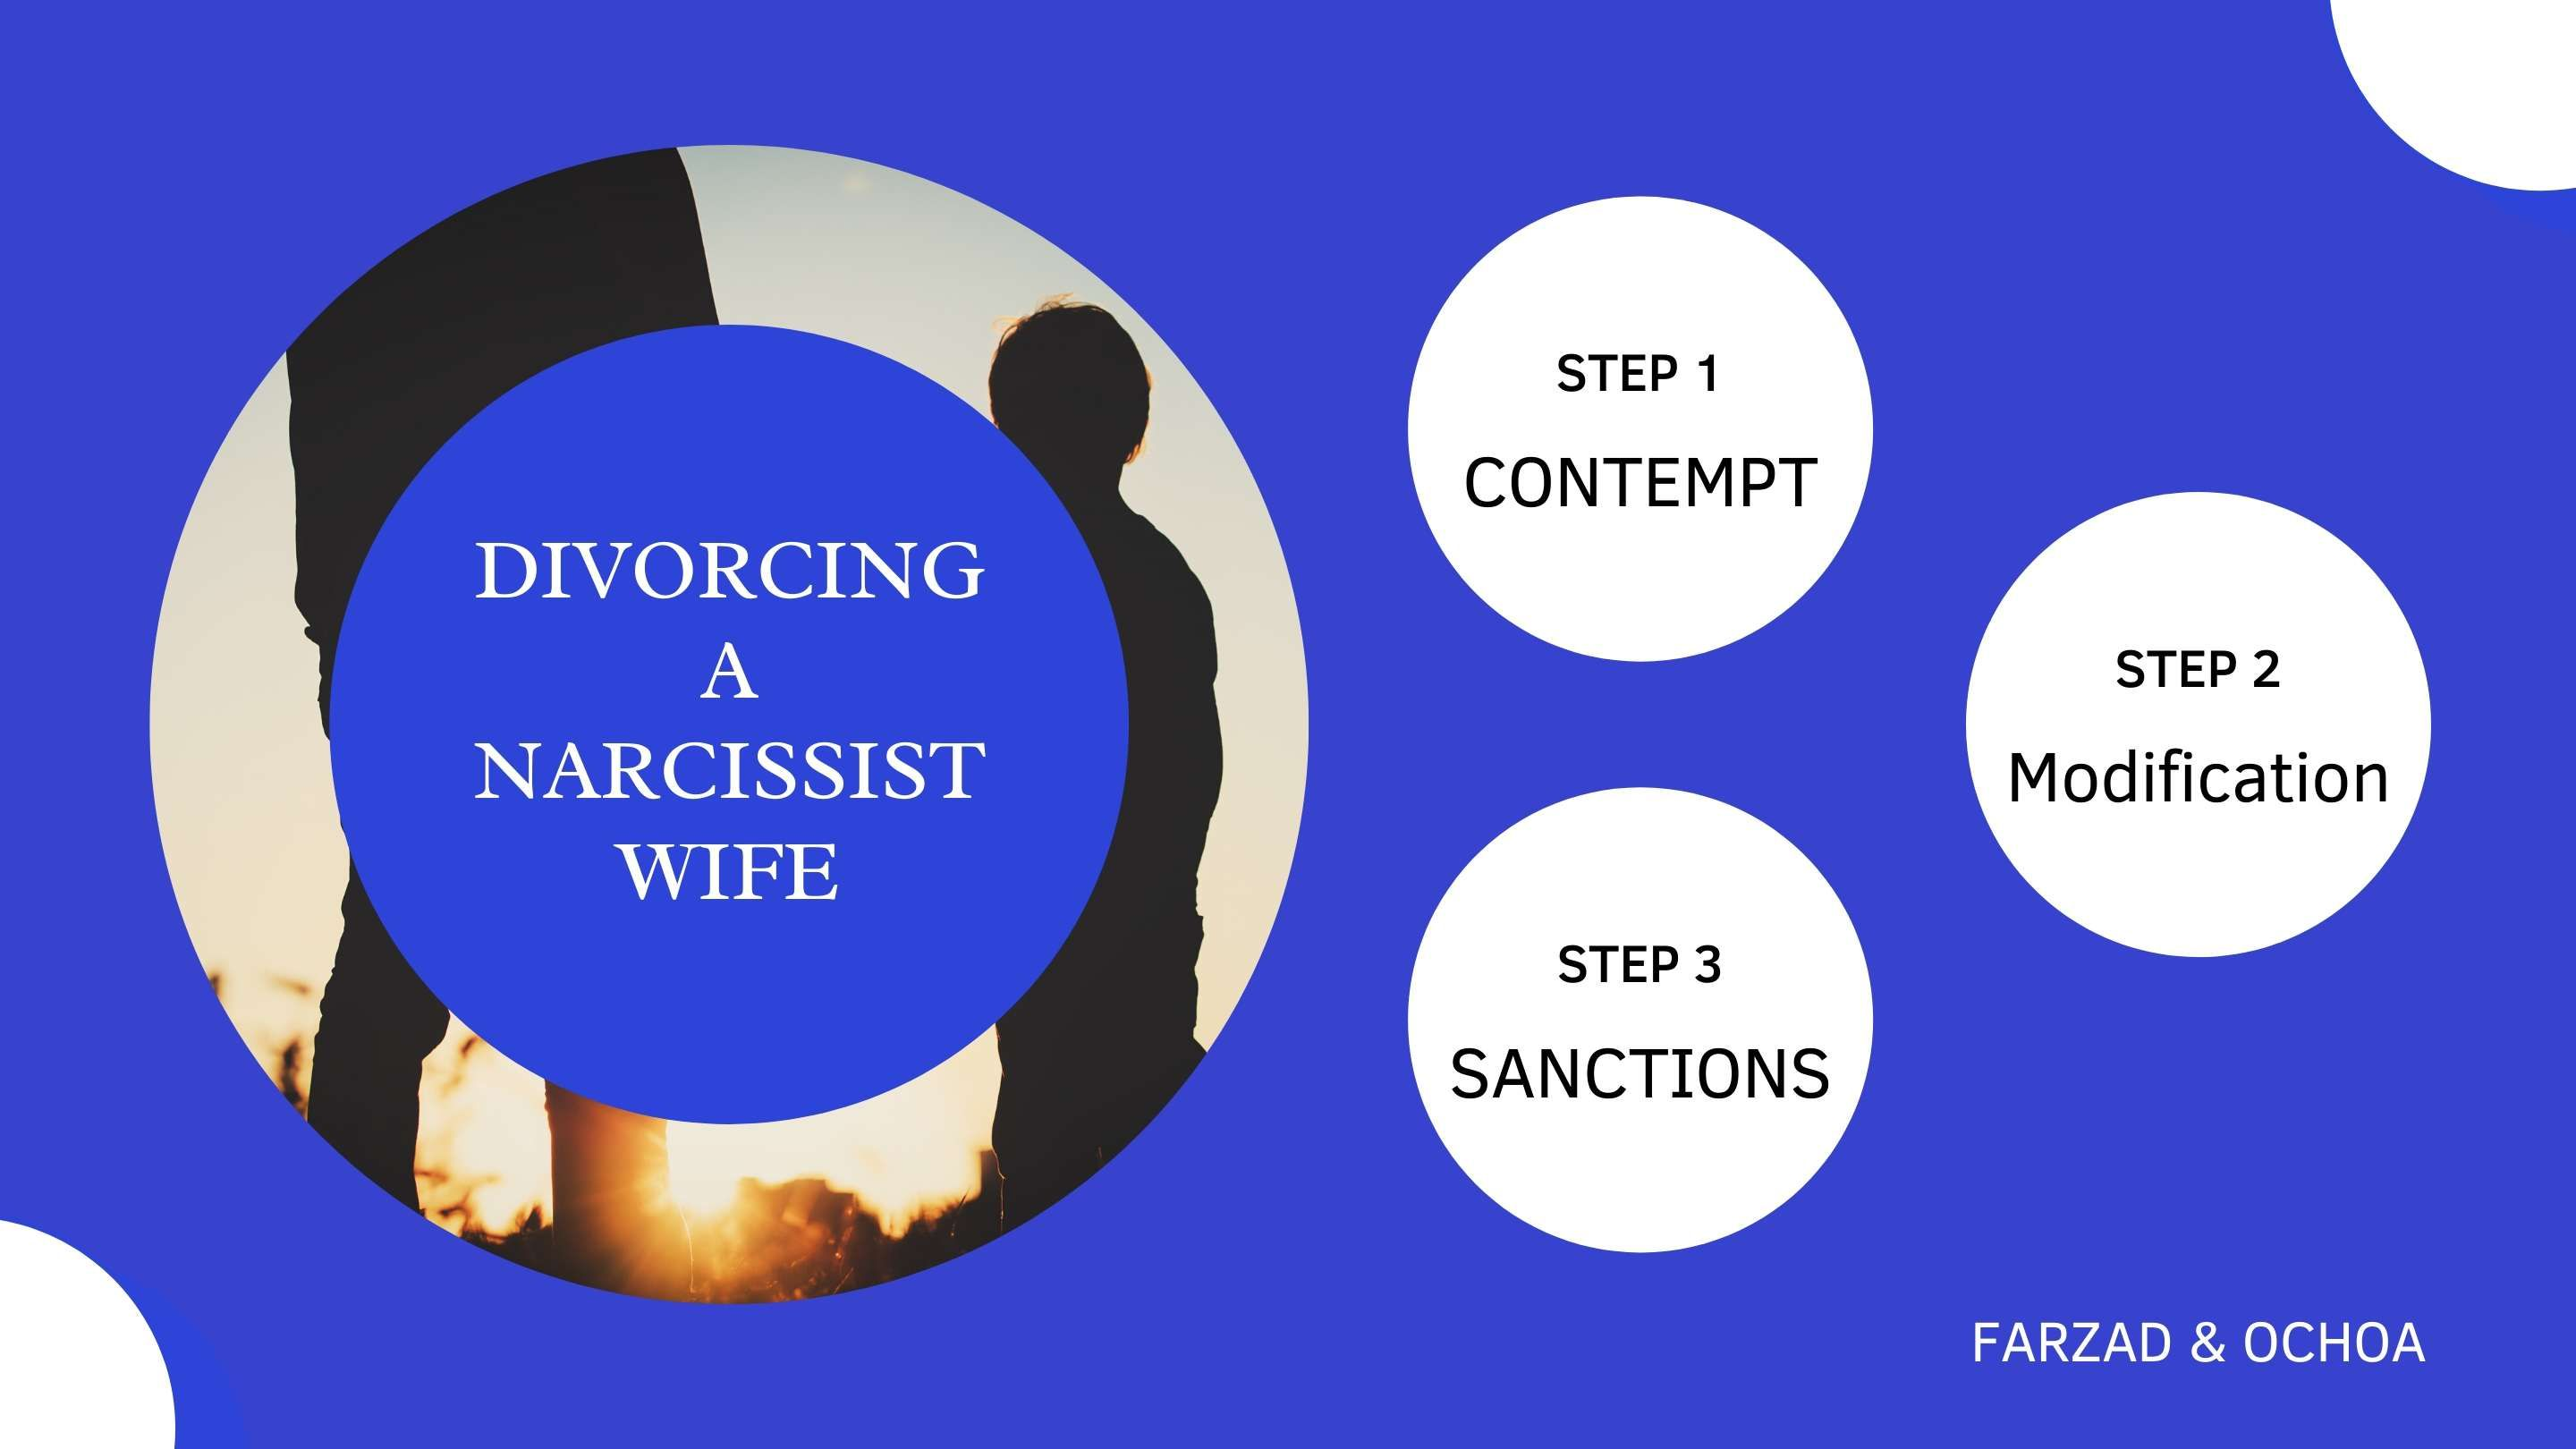 Image of father and son behind the words divorcing a narcissist wife. 3 steps of contempt, modification and sanctions.